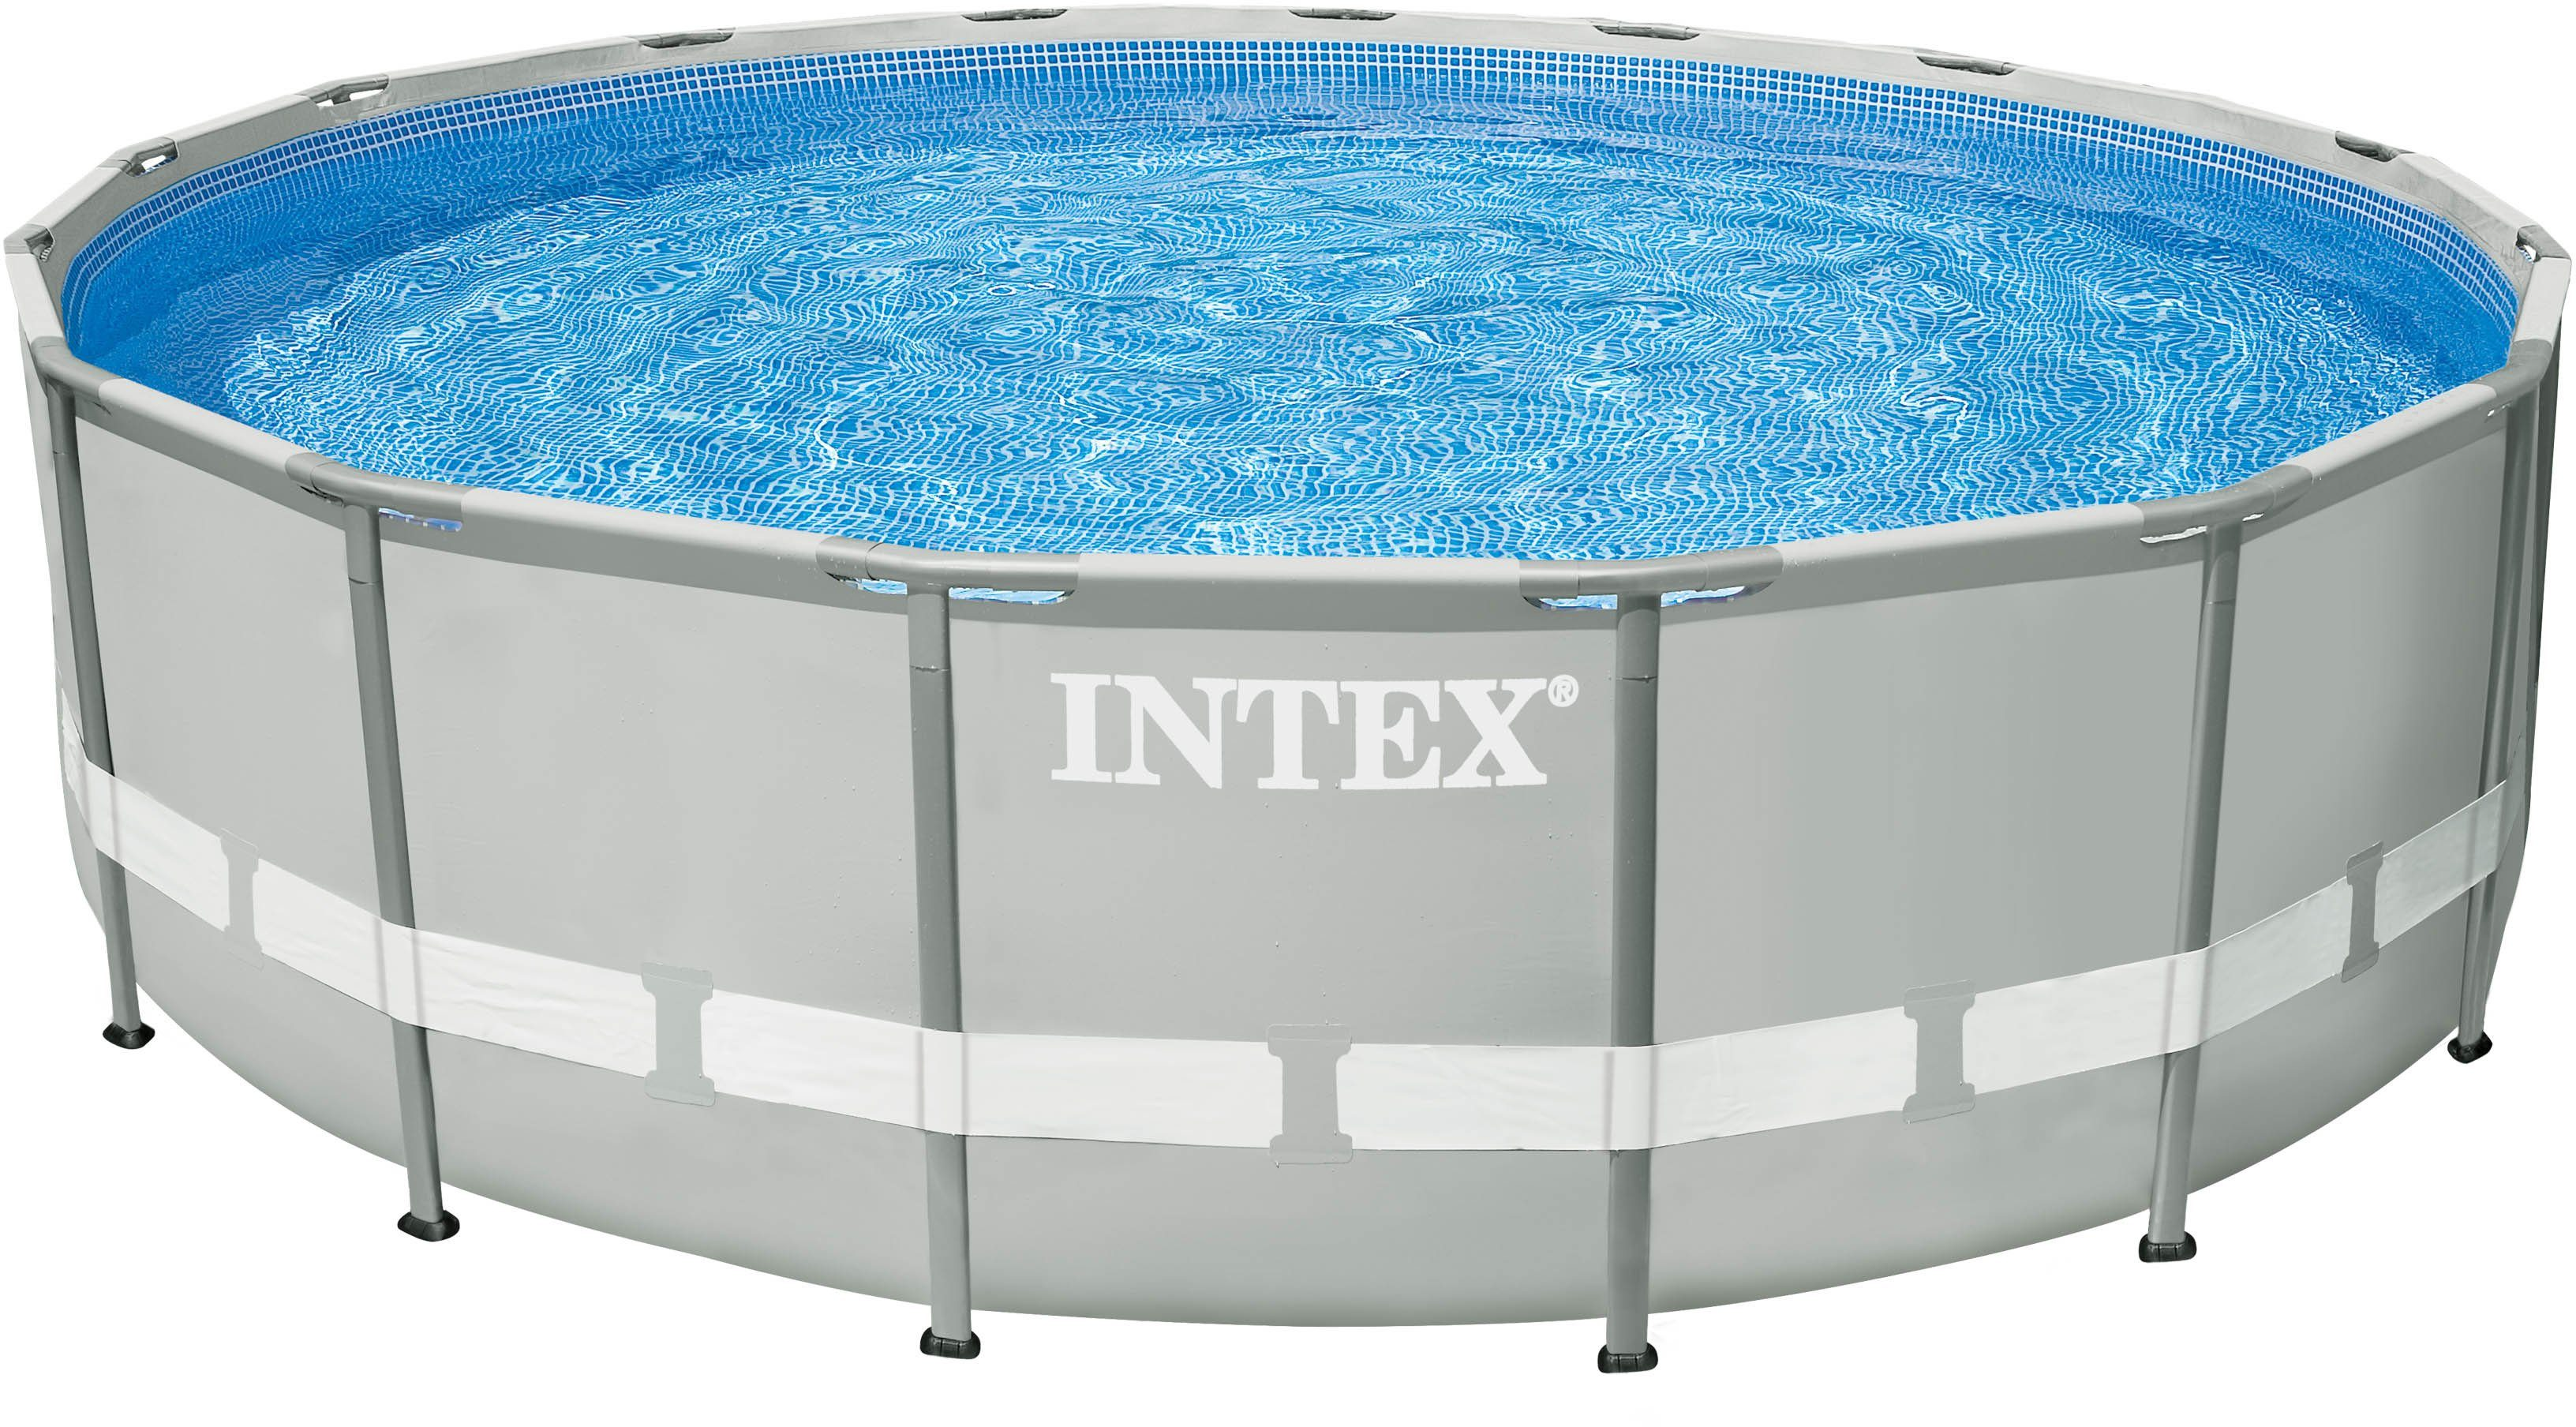 Intex Pool-Set, mit Kartuschenfilteranlage, Ø 488 cm, »Frame Pool Ultra Komplett-Set«